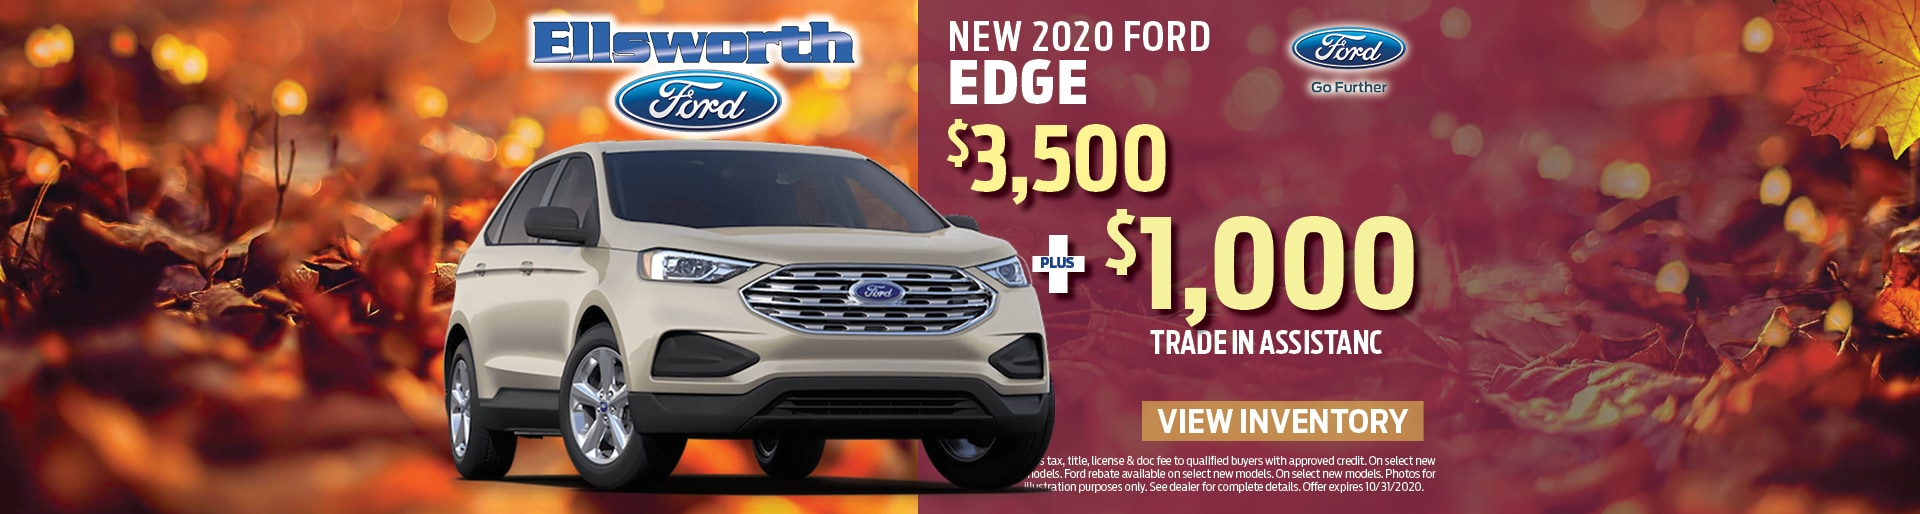 New 2020 Ford Edge Ford Customer Cash | Ellsworth, WI